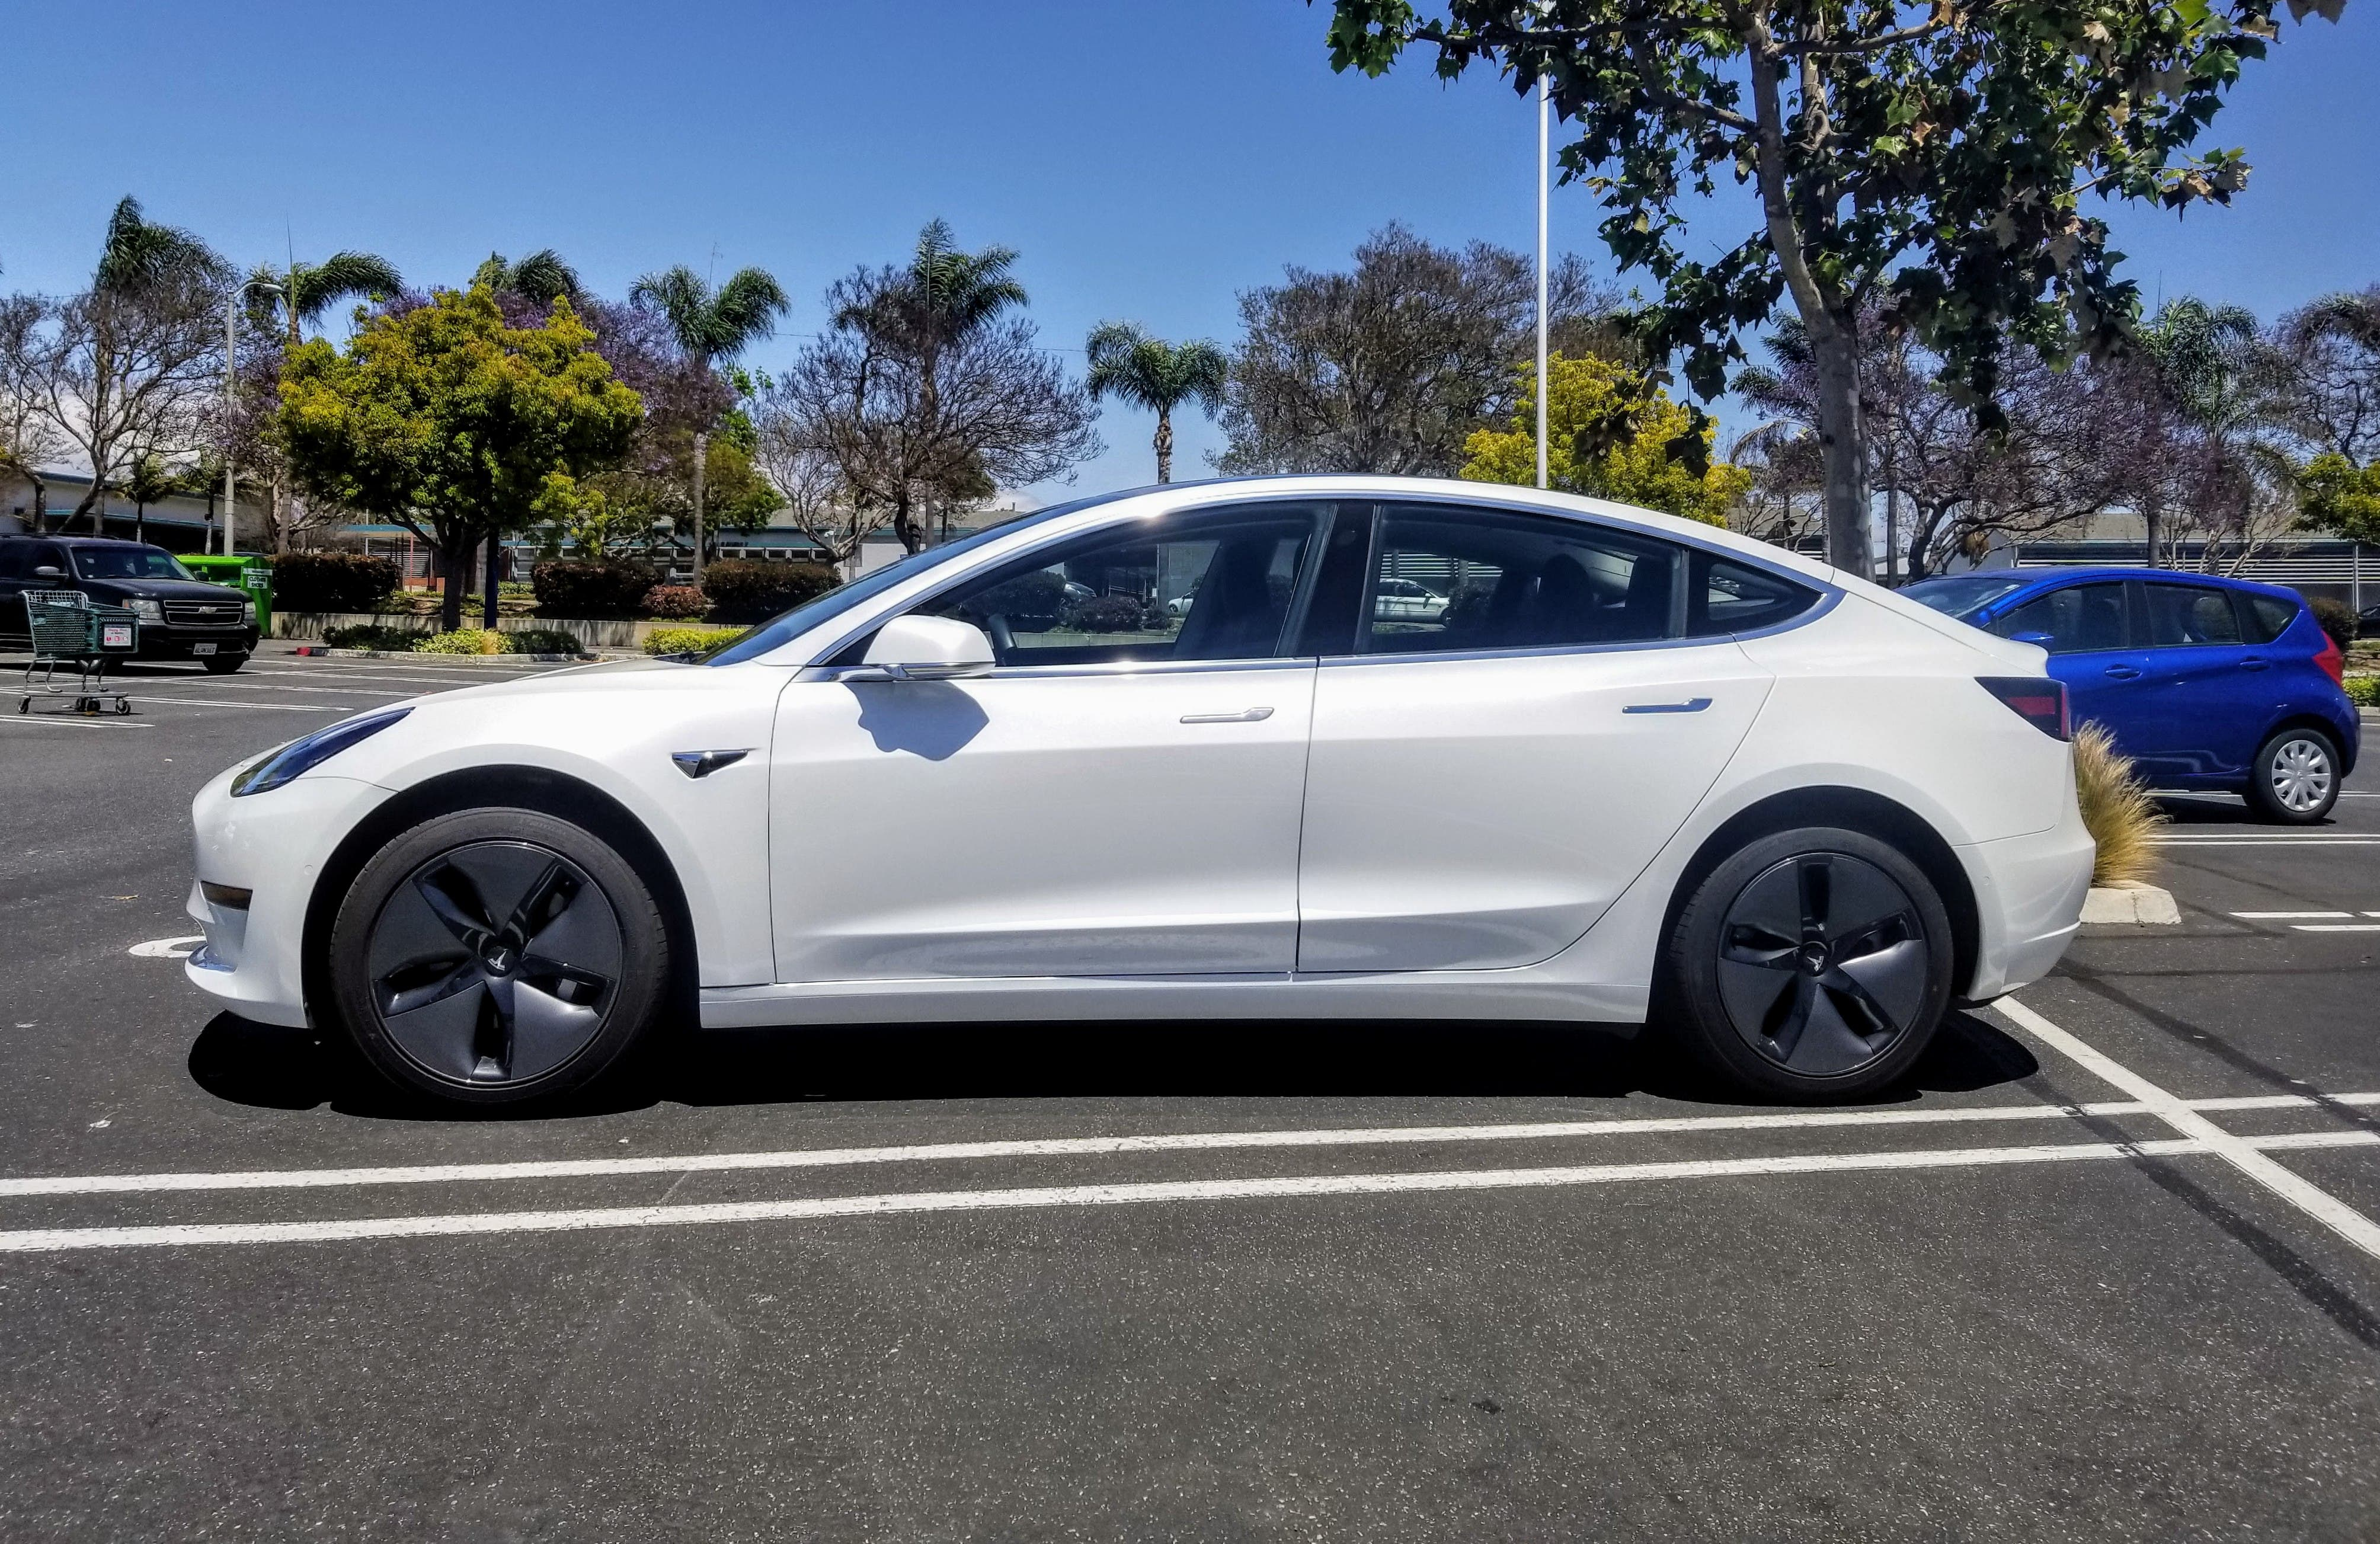 Redditor Machimib Related A Few More Details From The Premium Version Of Article That Shed Light On Specific Improvements In Model 3